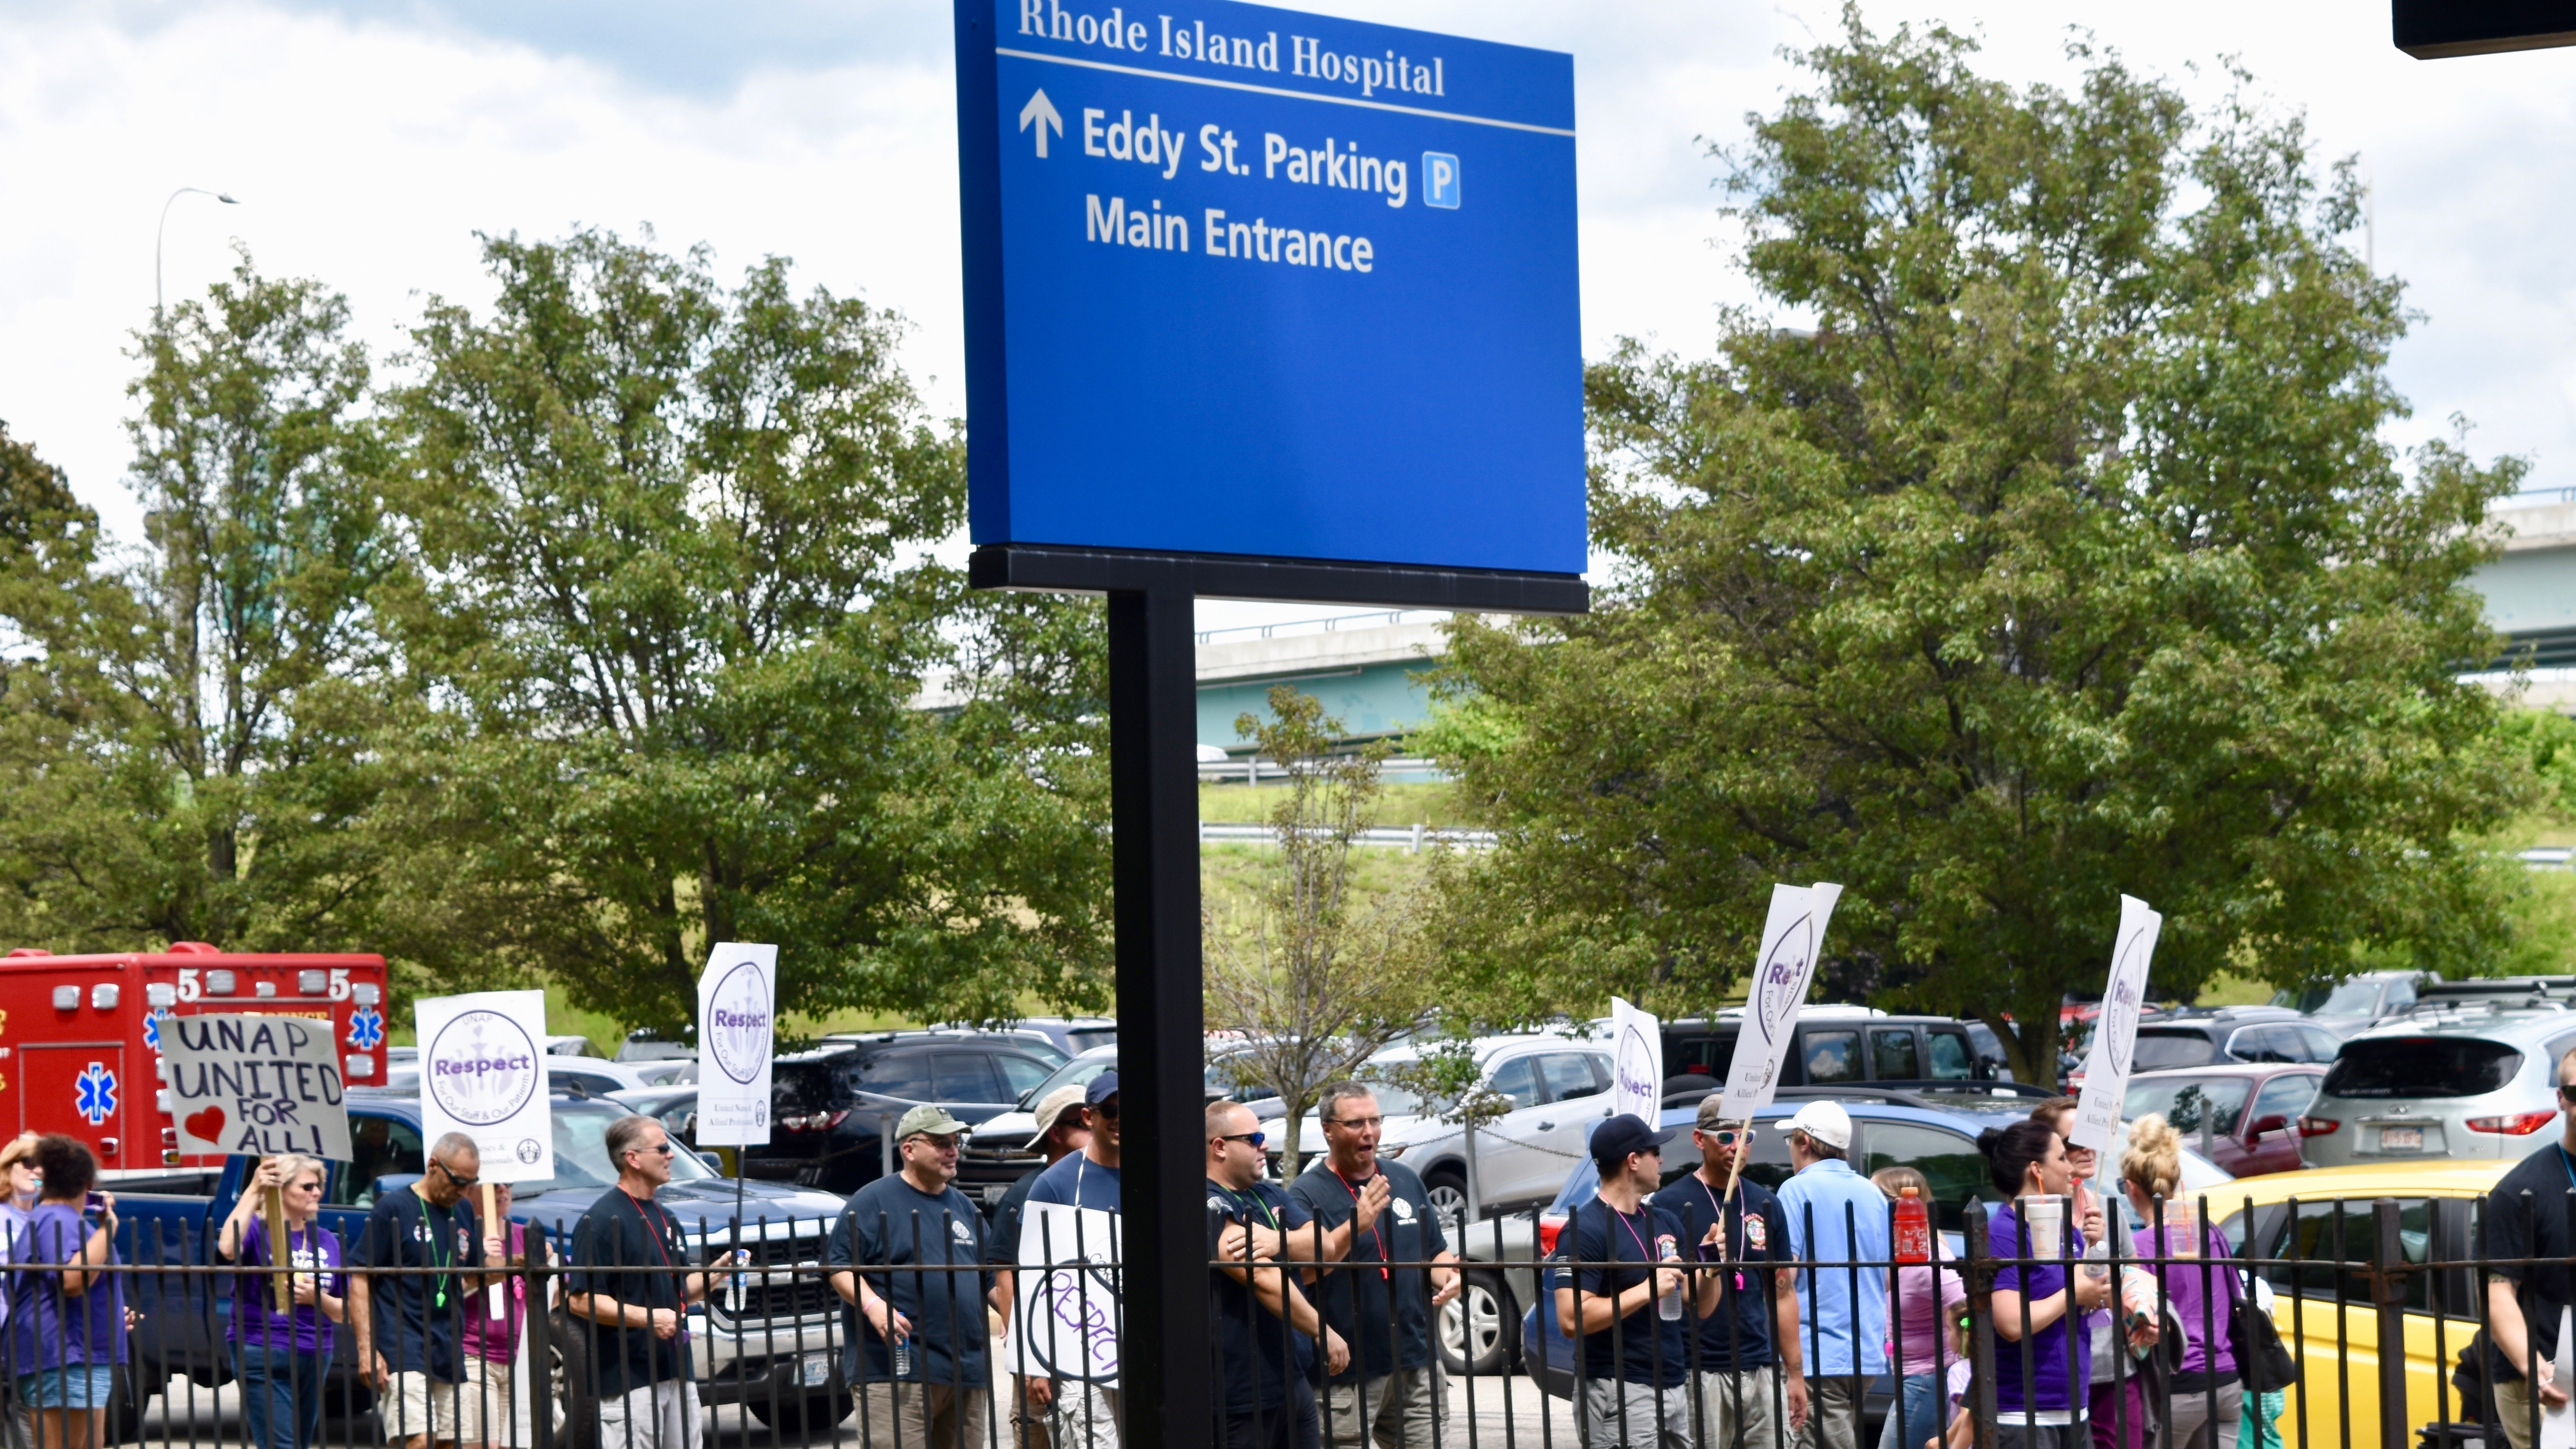 UNAP members conduct informational picket outside Rhode